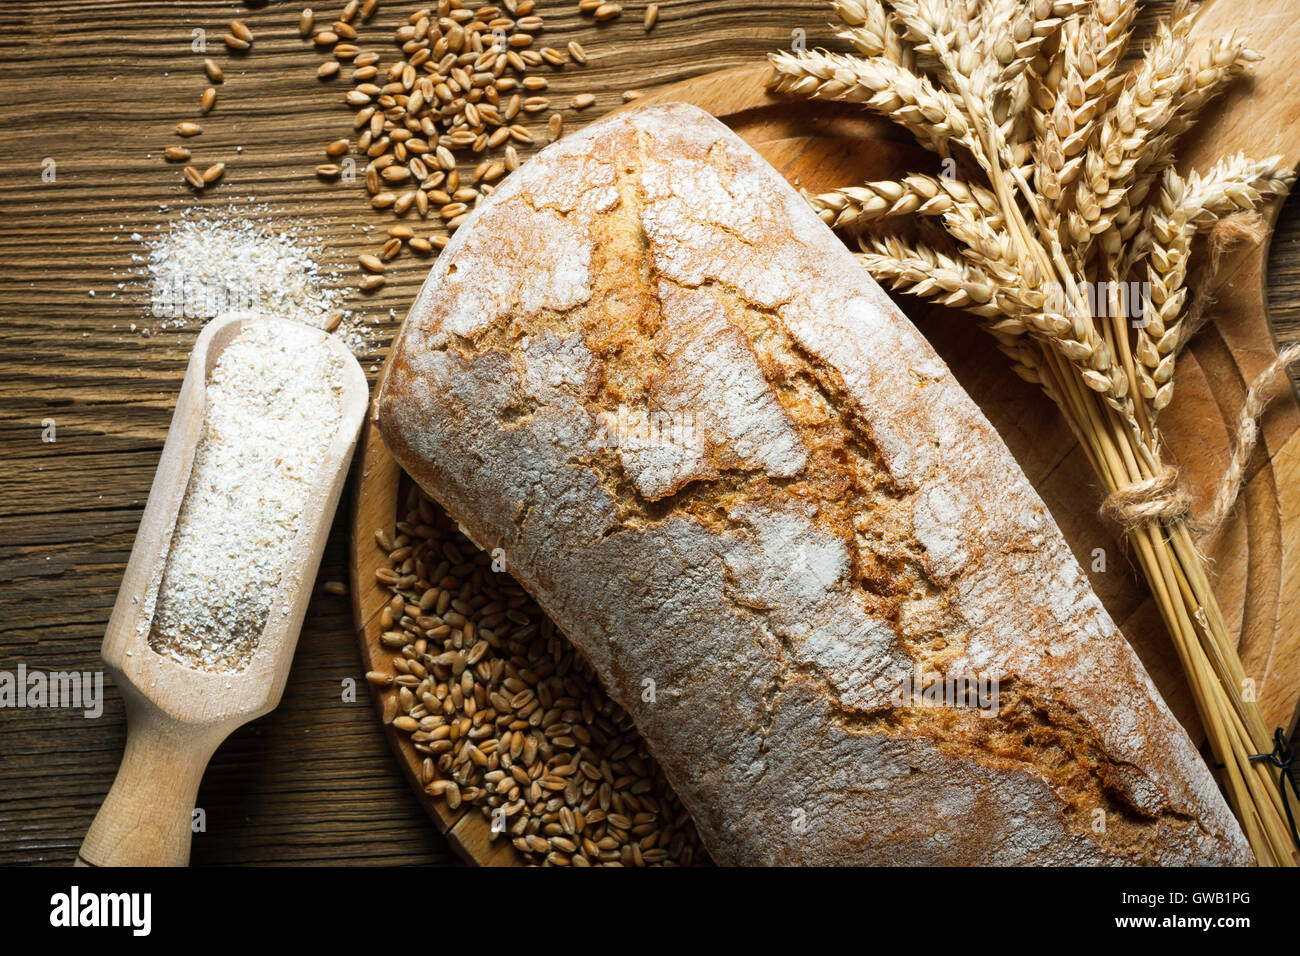 Homemade loaf of bread with ingredients on wooden table - Stock Image